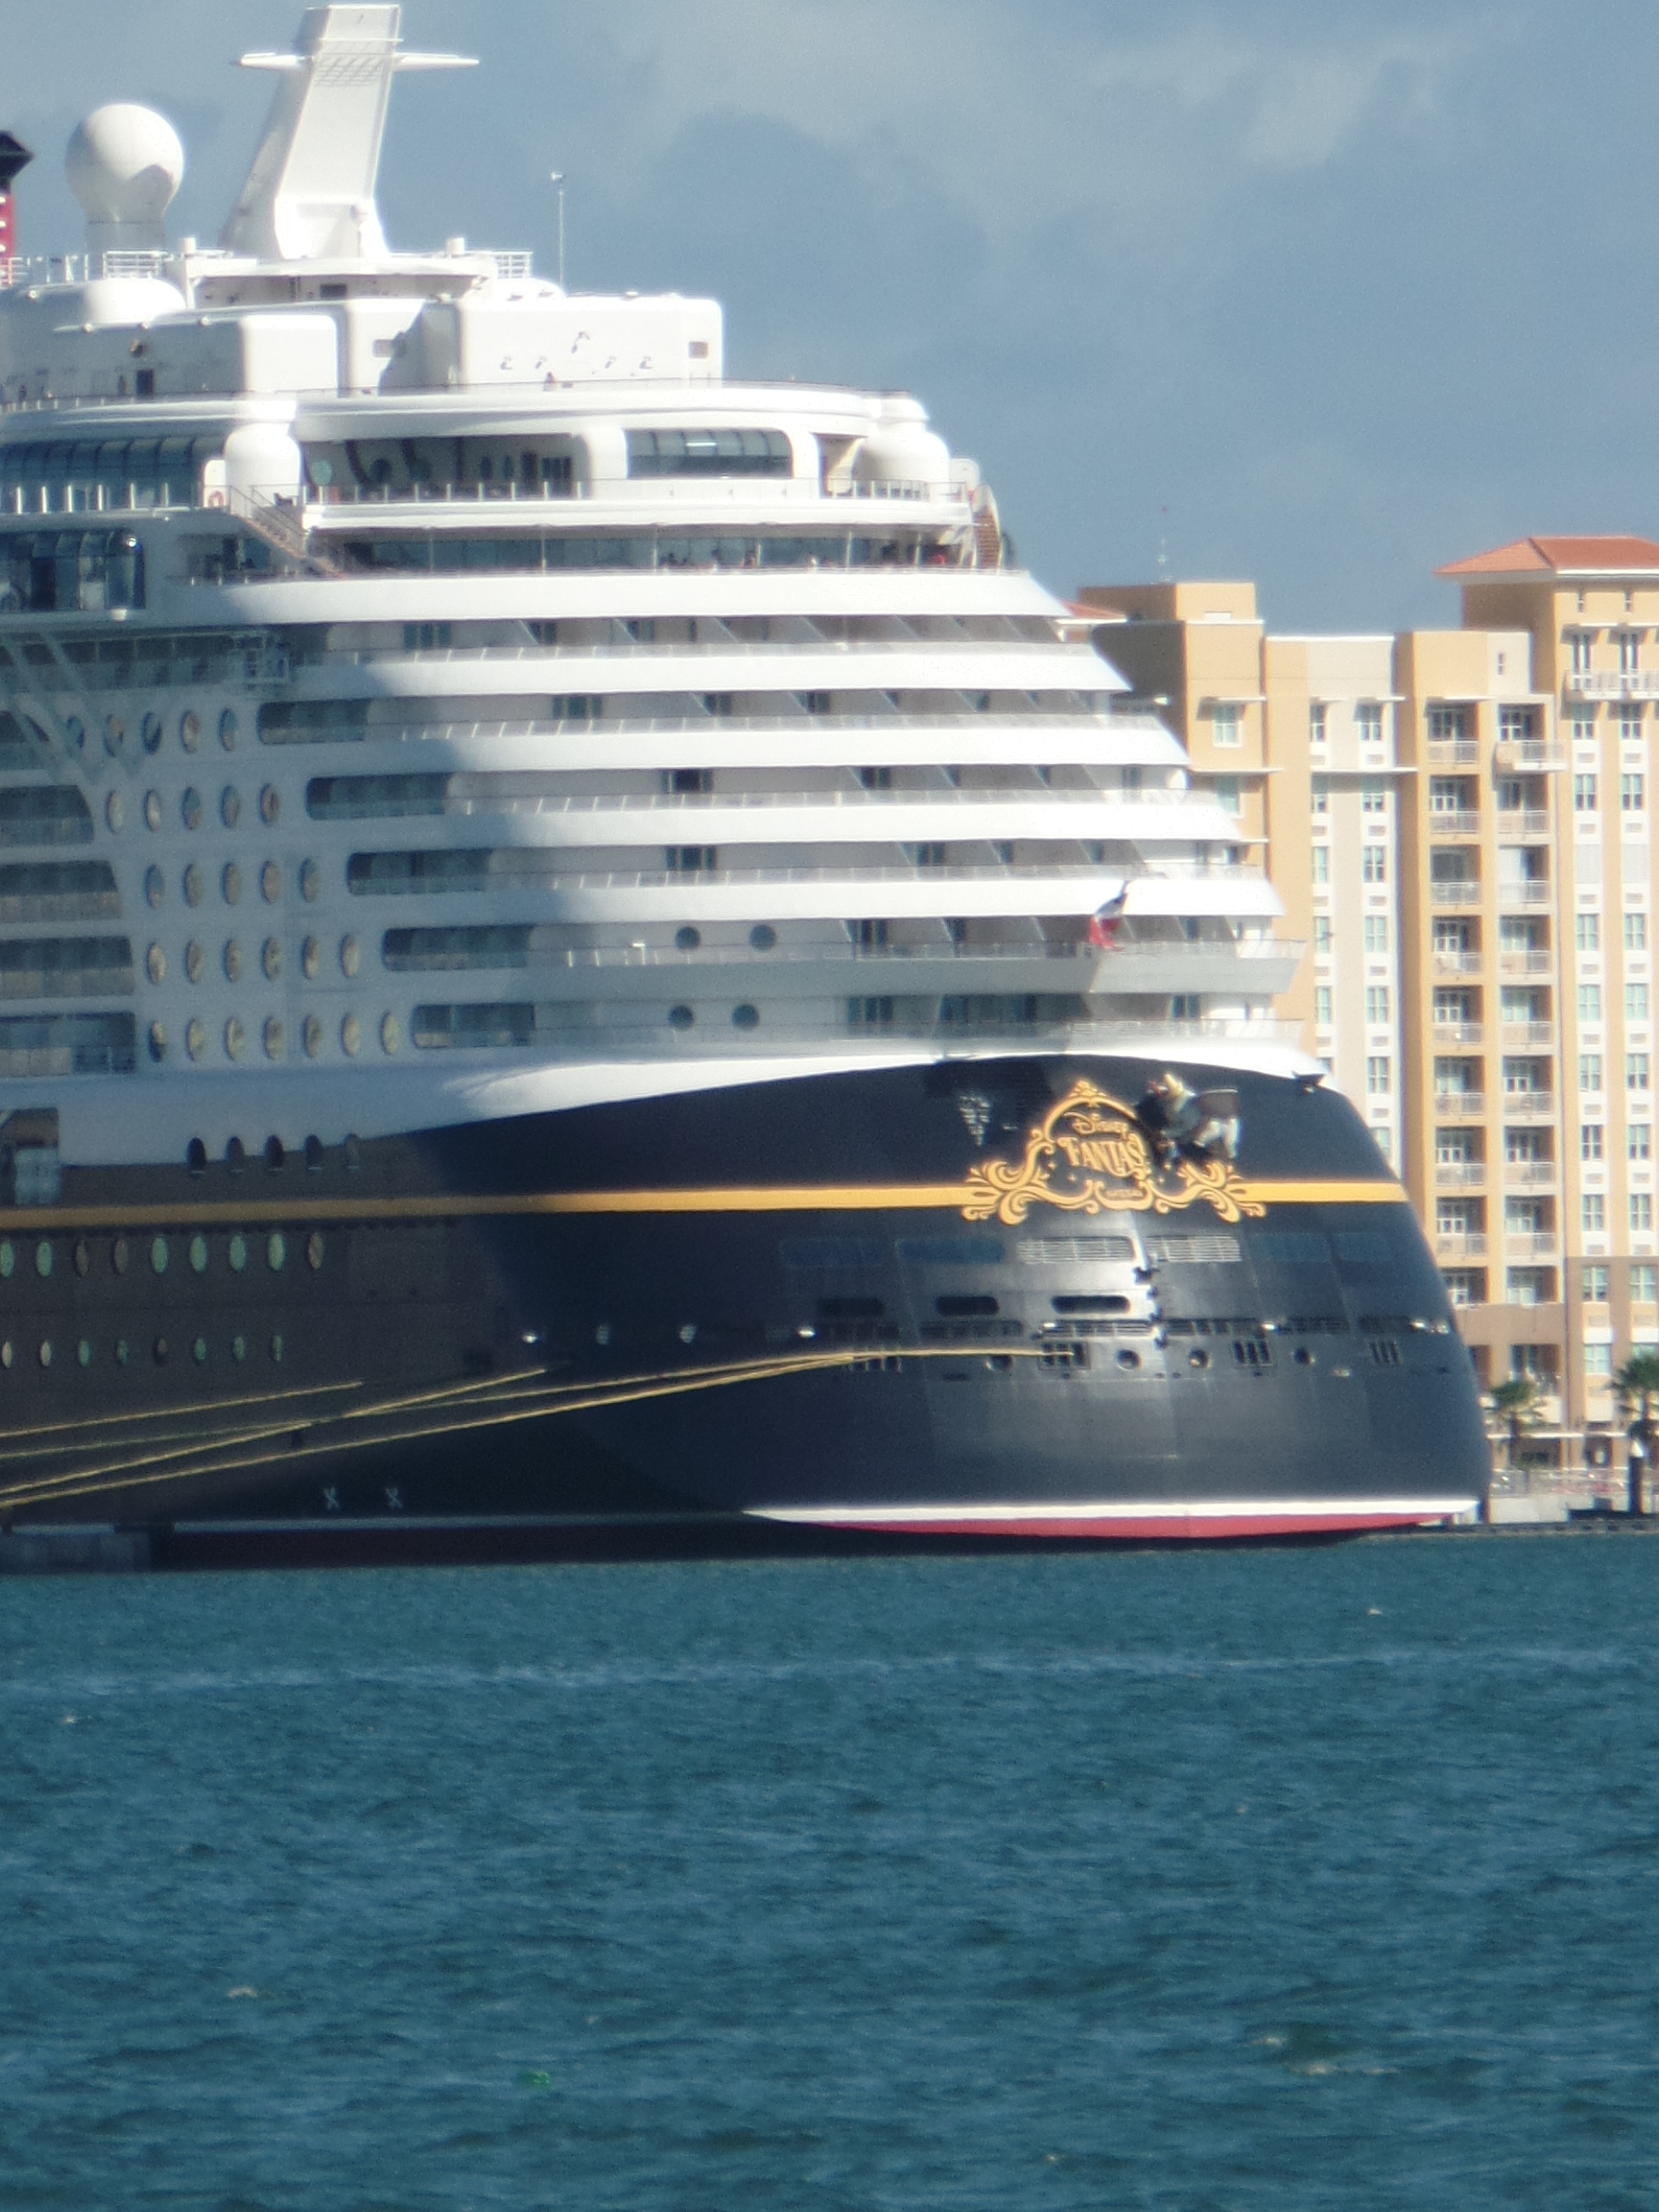 Disney cruise line series staying connected on board for The world cruise ship cost